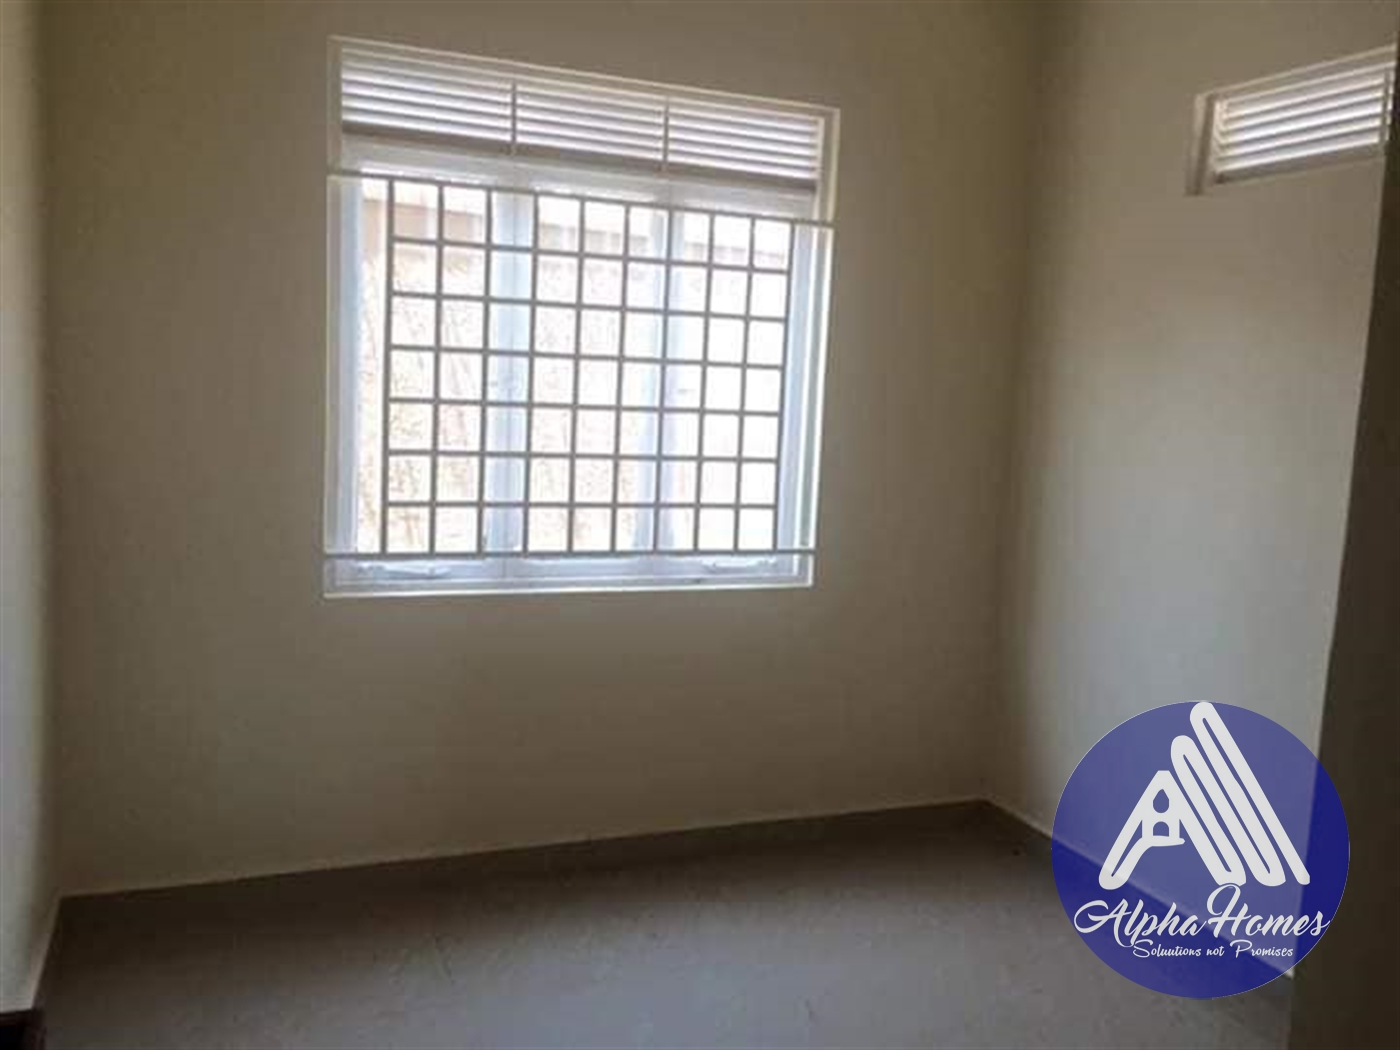 Apartment for sale in Munyonyo Kampala